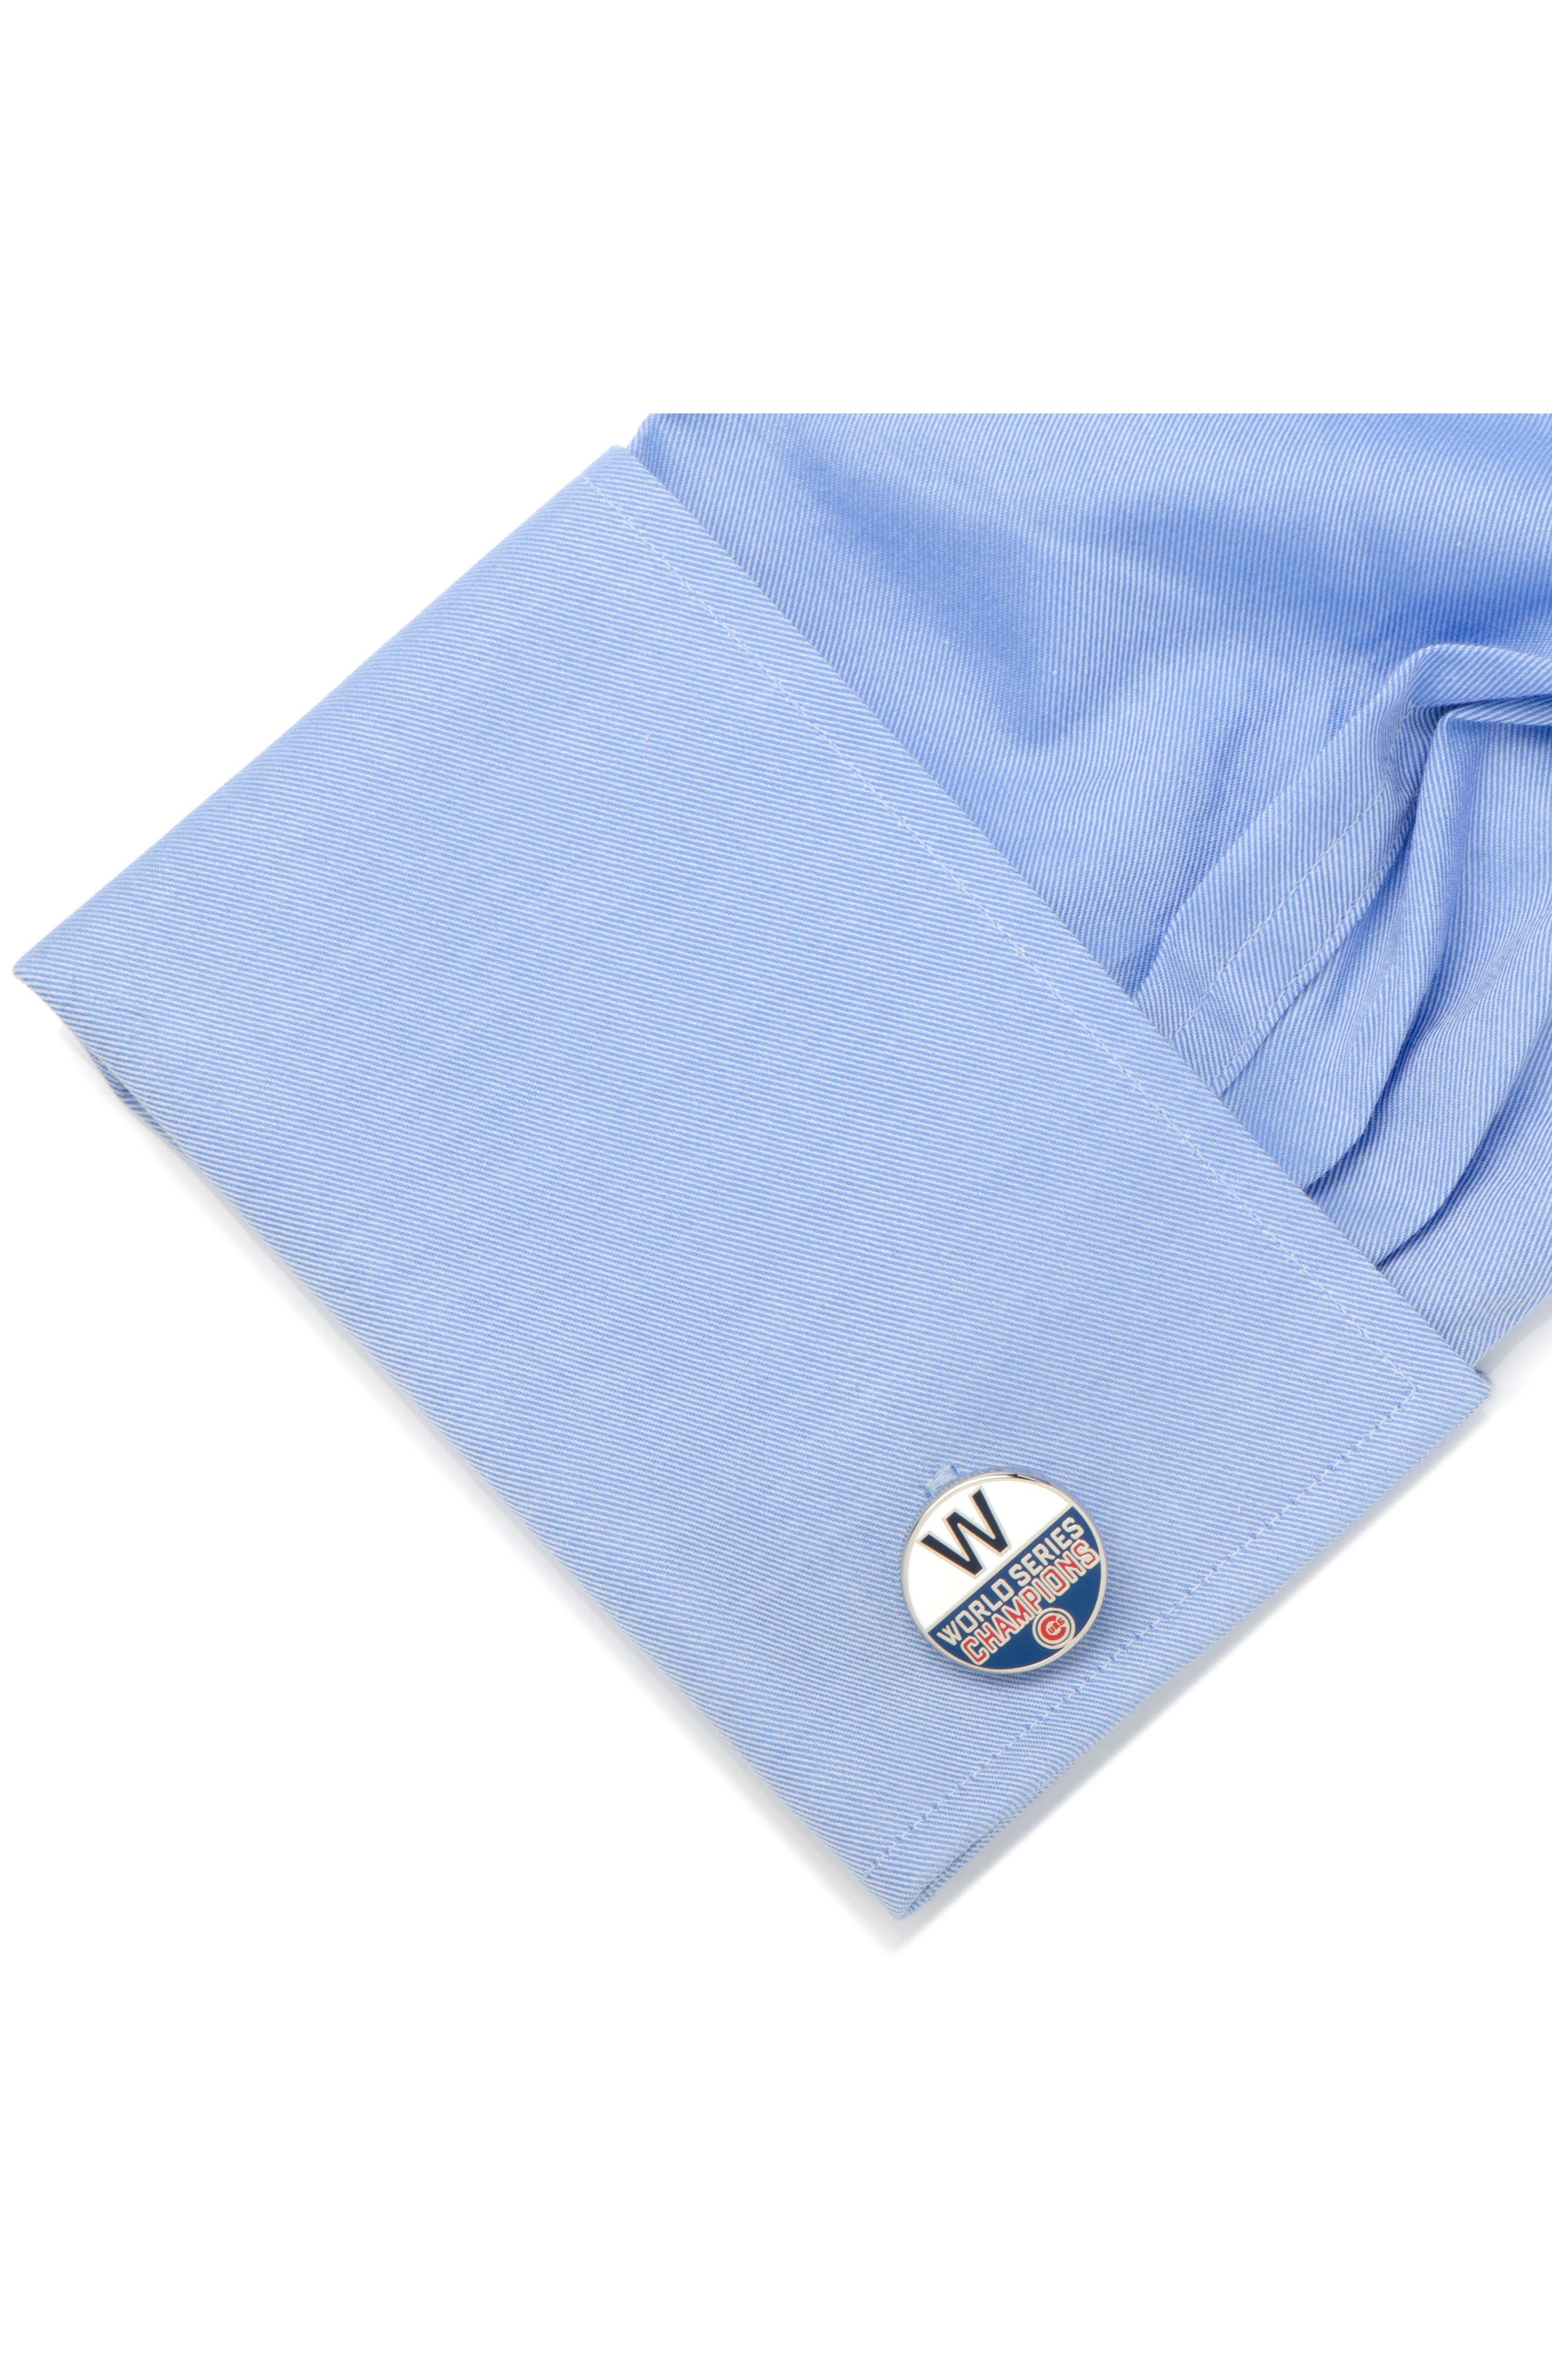 Cubs World Series Cuff Links,                             Alternate thumbnail 3, color,                             046